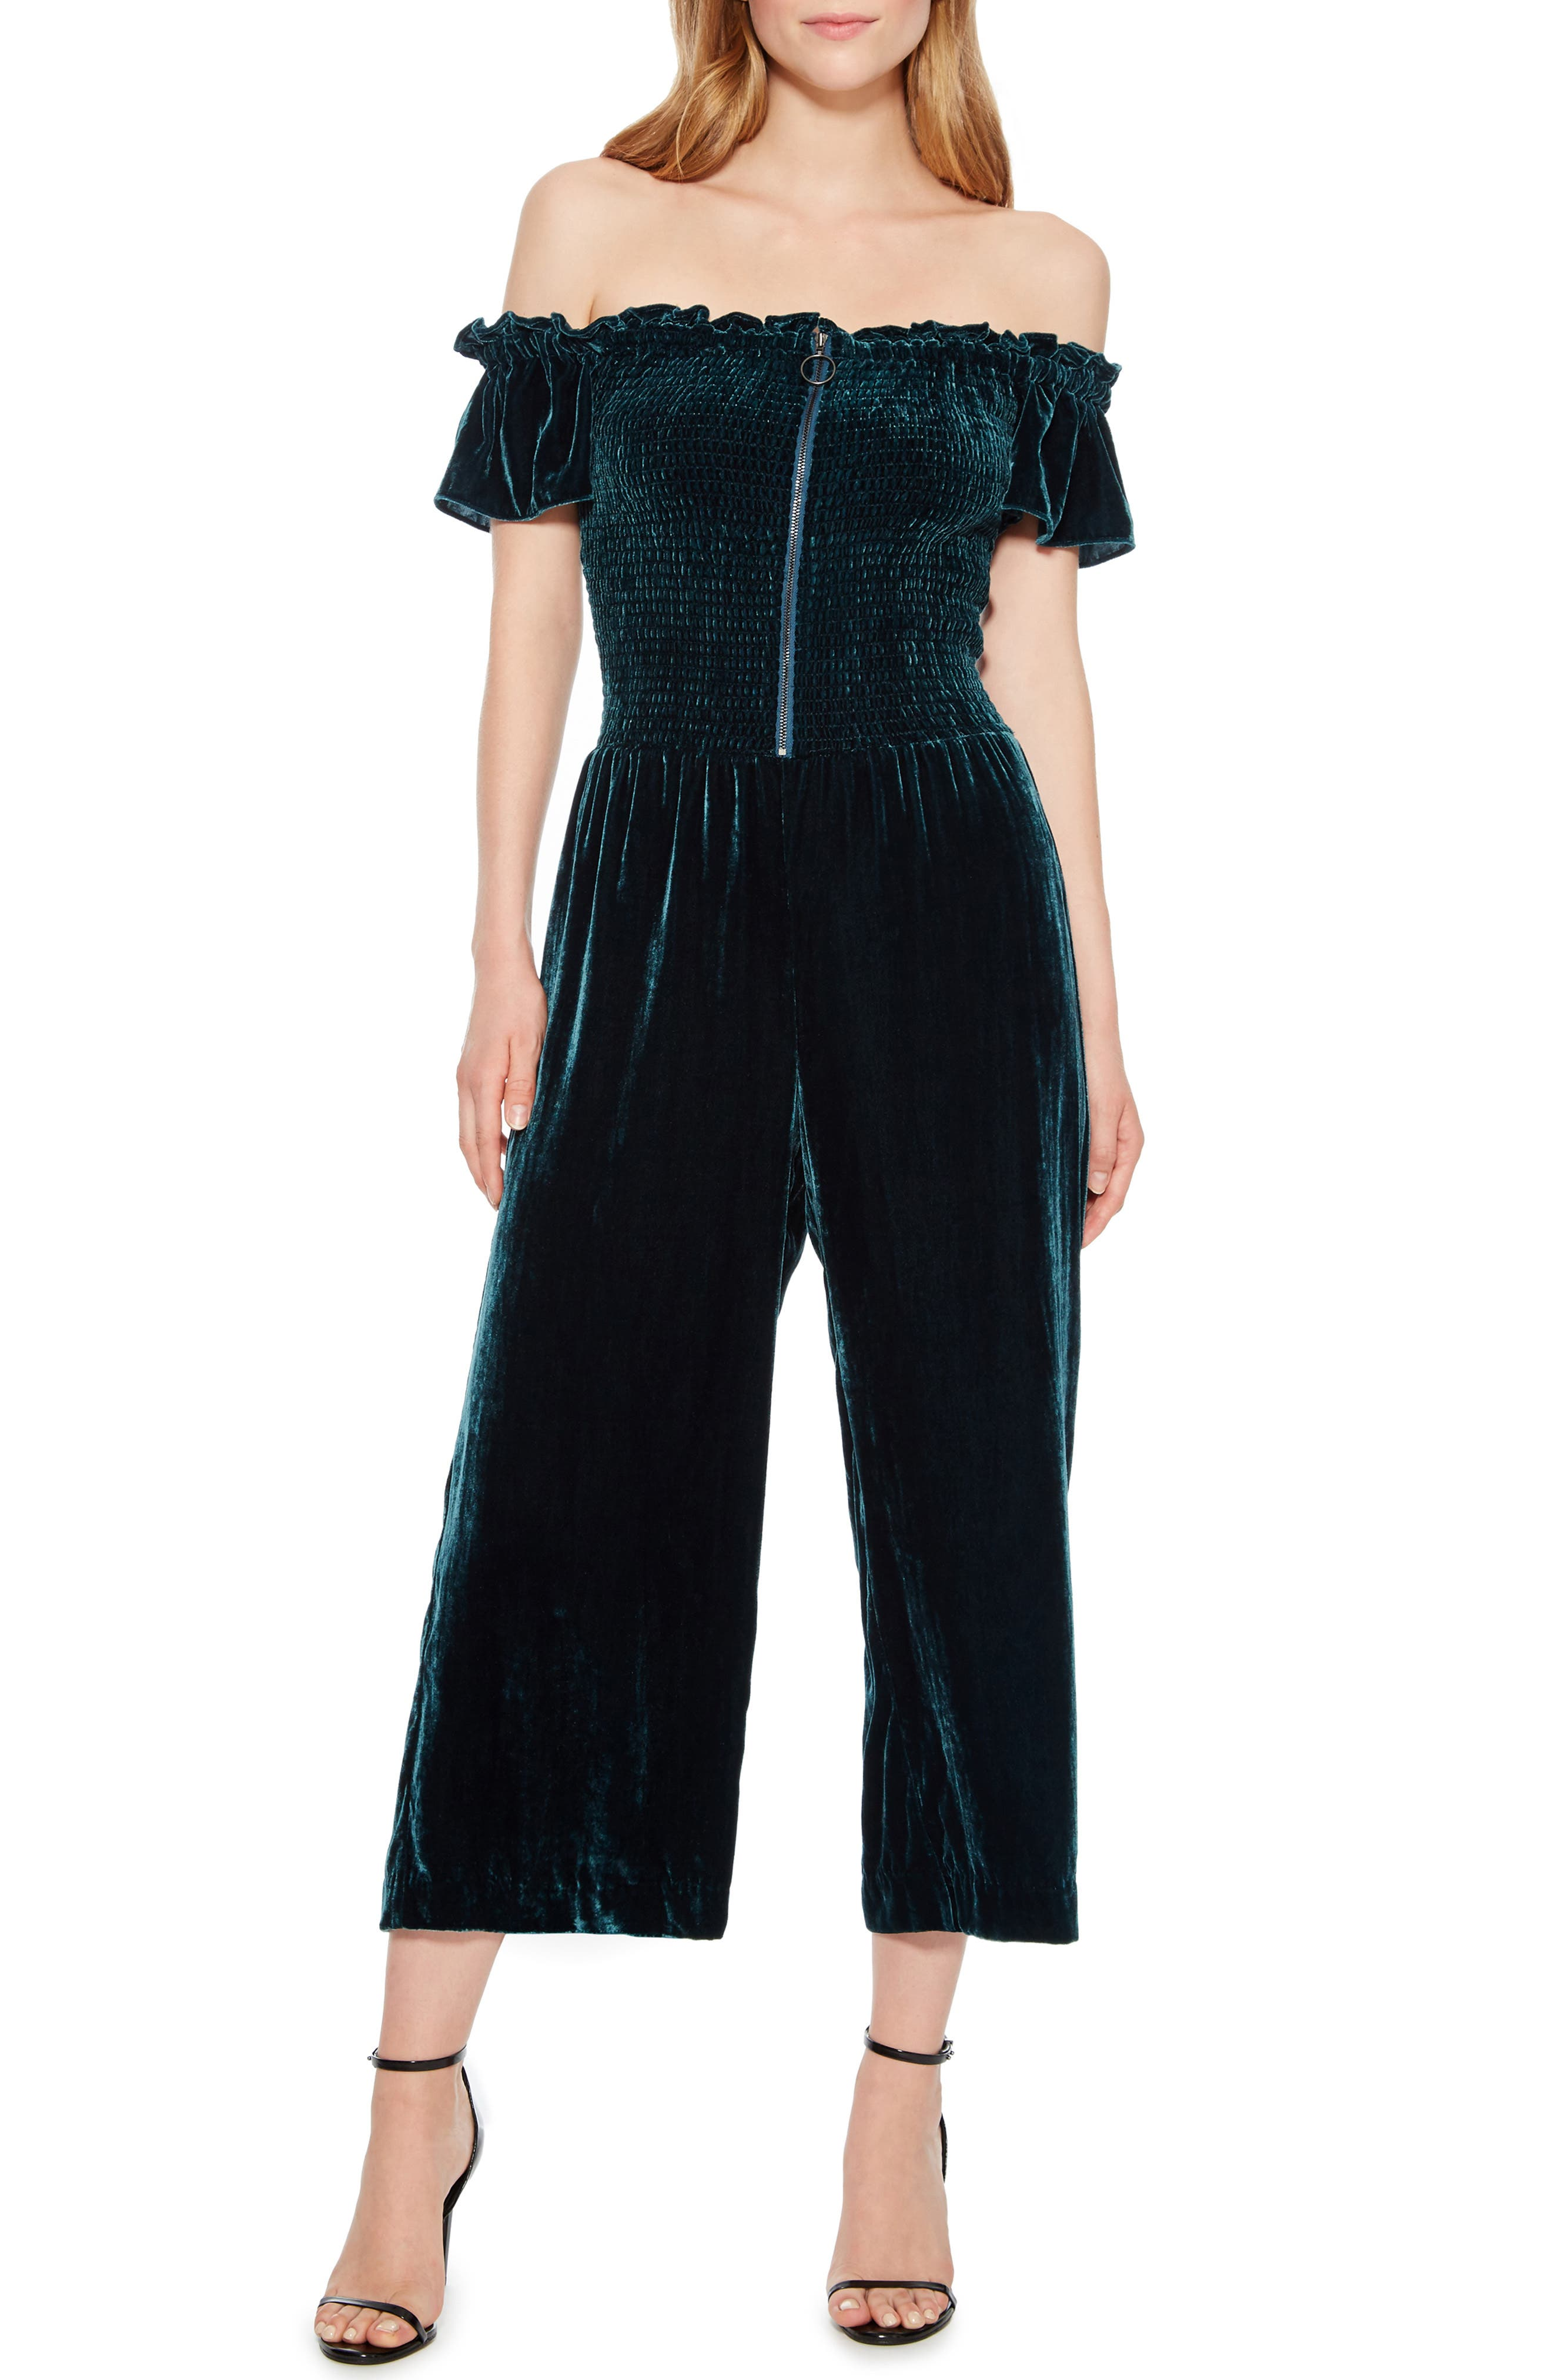 Londyn Off the Shoulder Jumpsuit,                             Main thumbnail 1, color,                             EVERGLADE